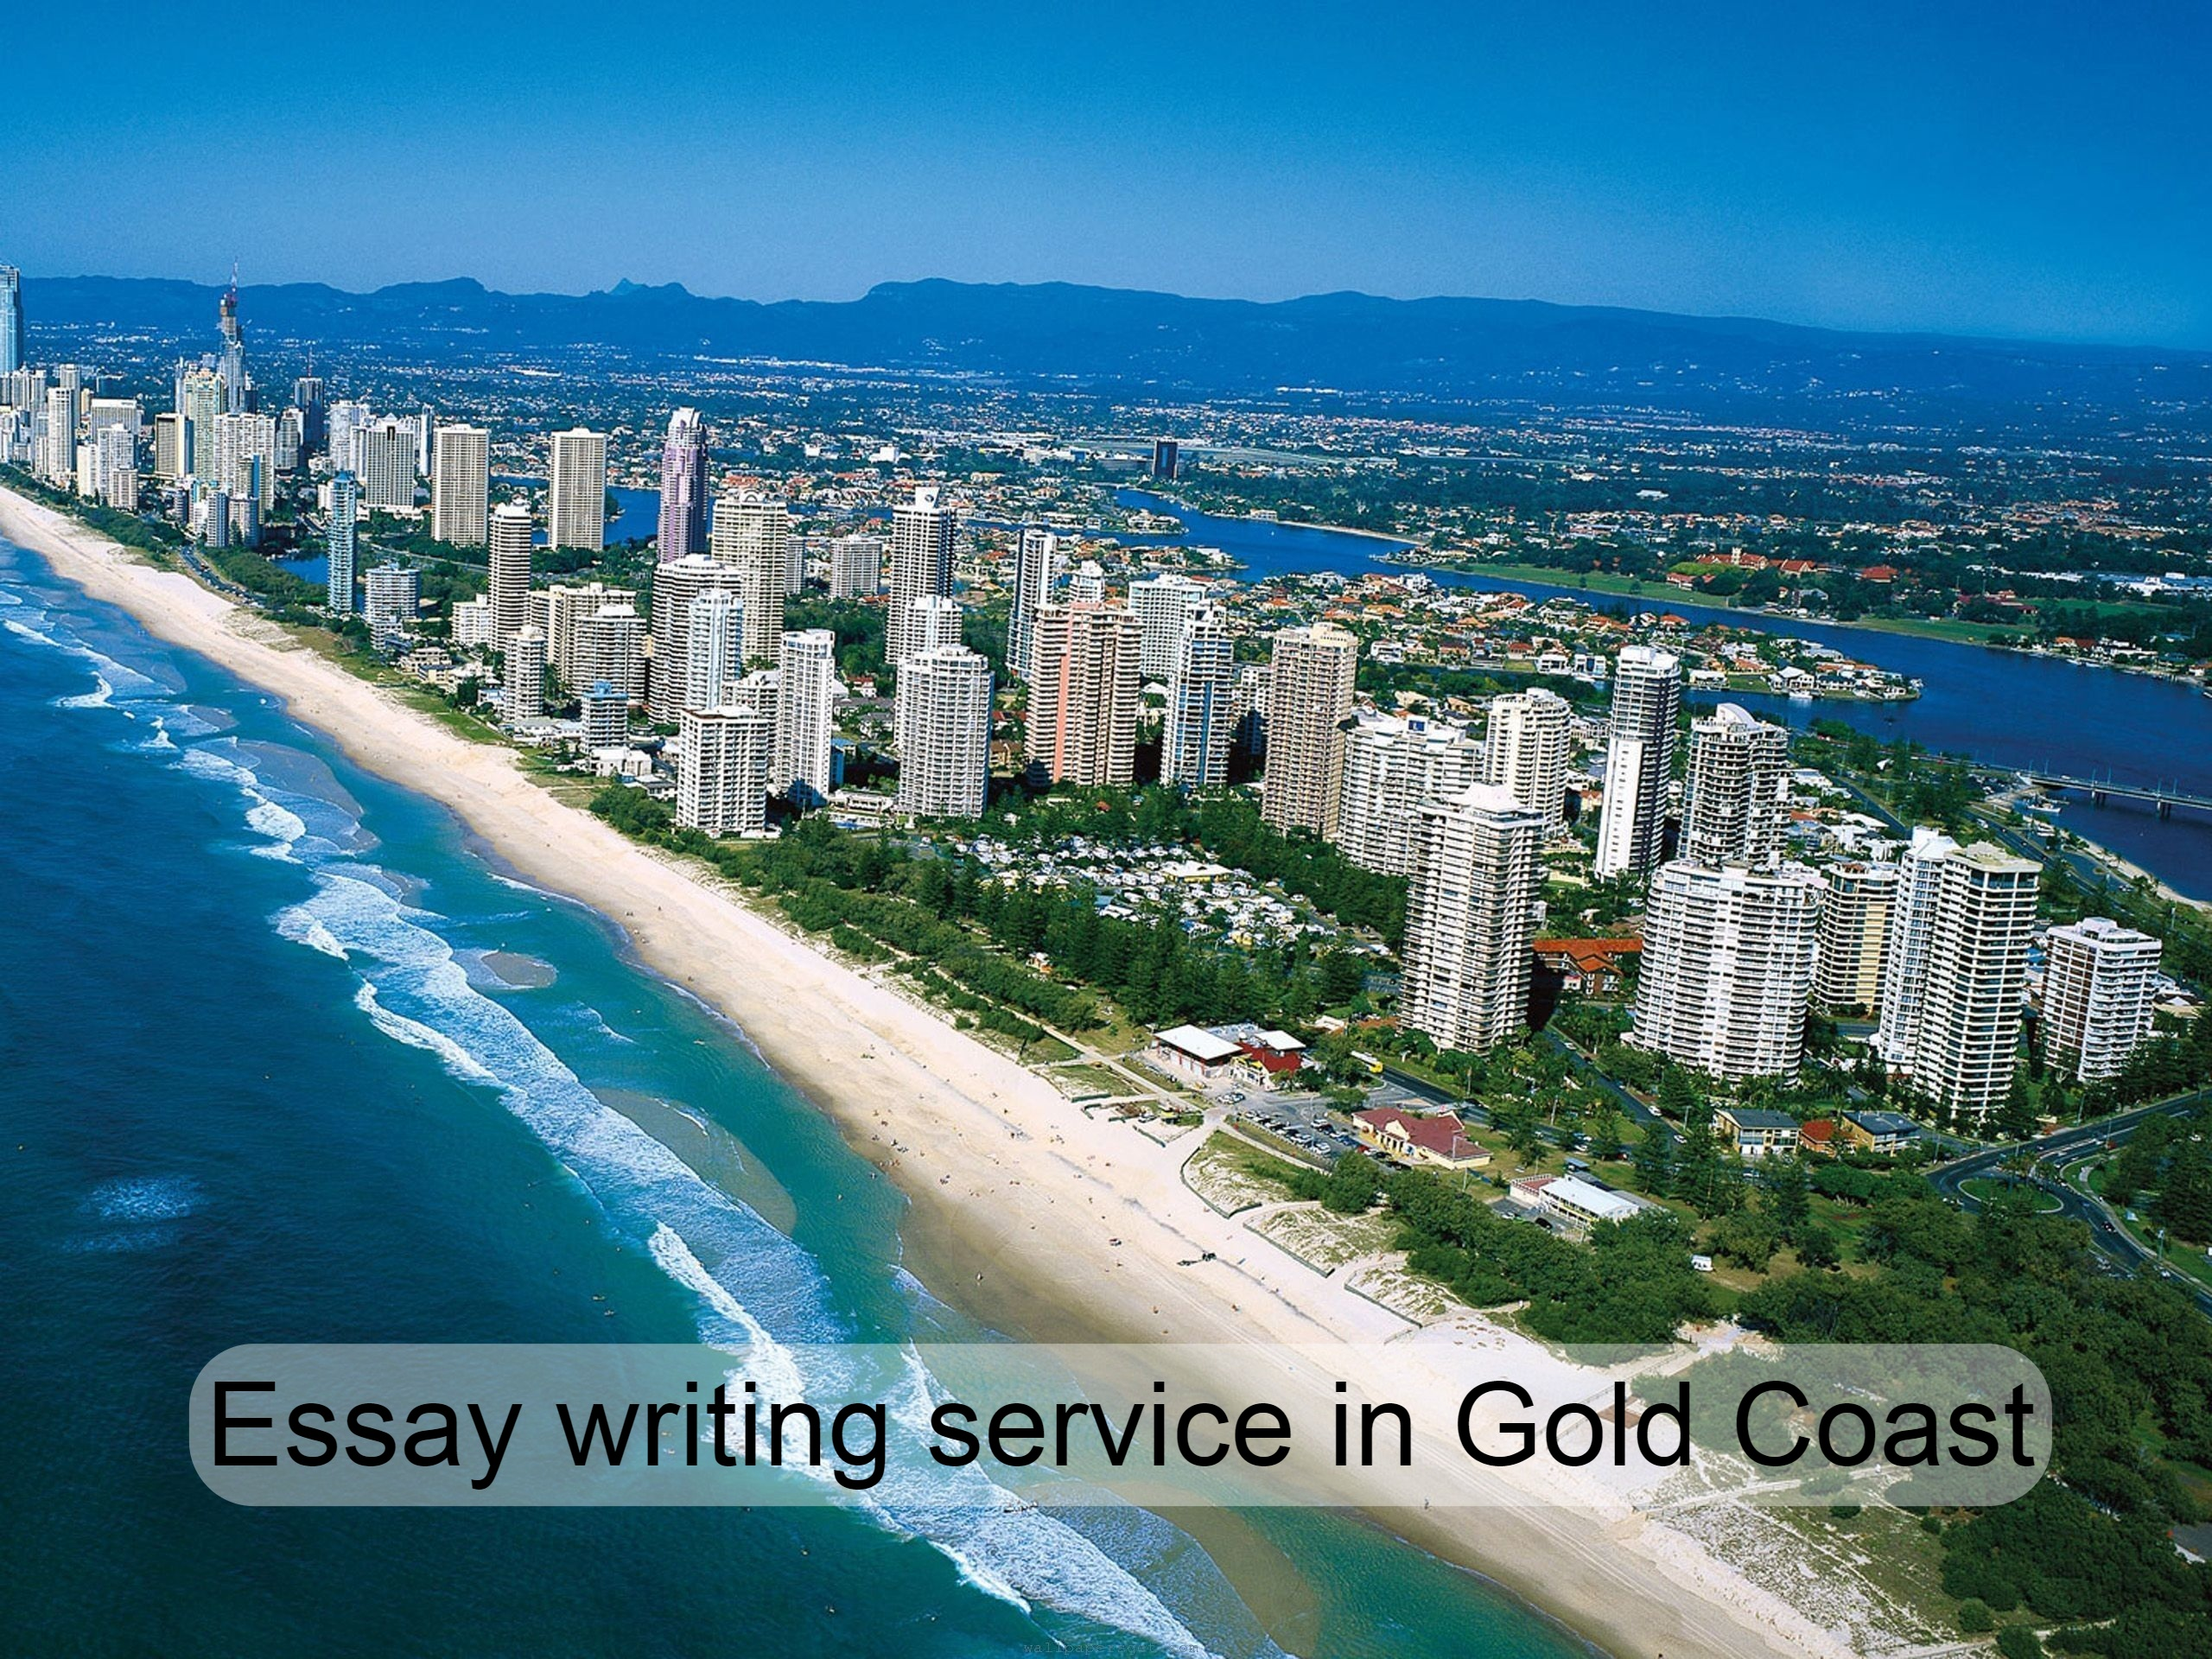 Essay writing service in Gold Coast